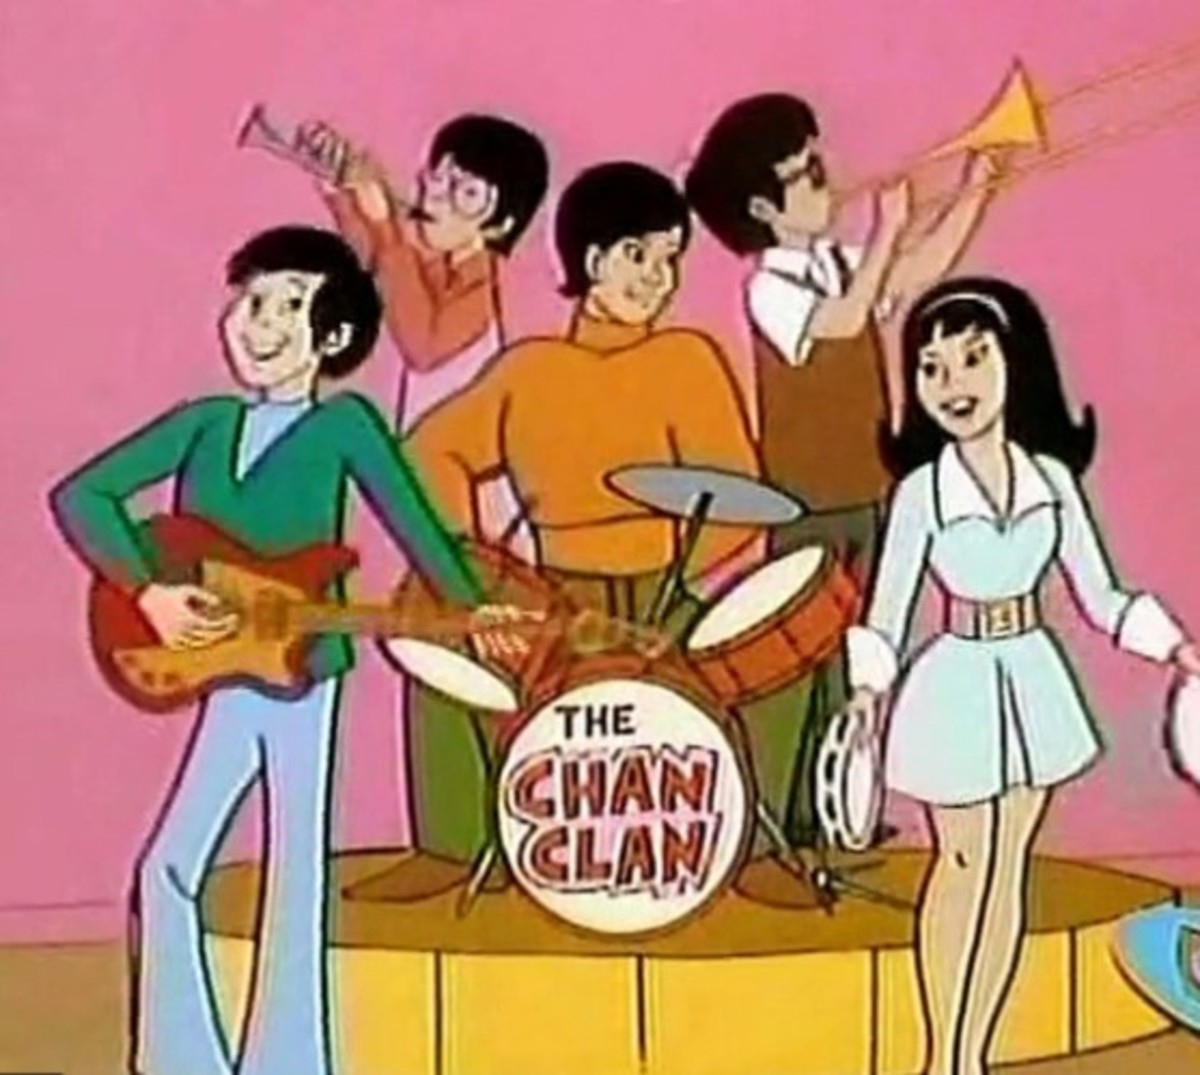 The Amazing Chan and The Chan Clan, Hanna-Barbera Productions, 1972